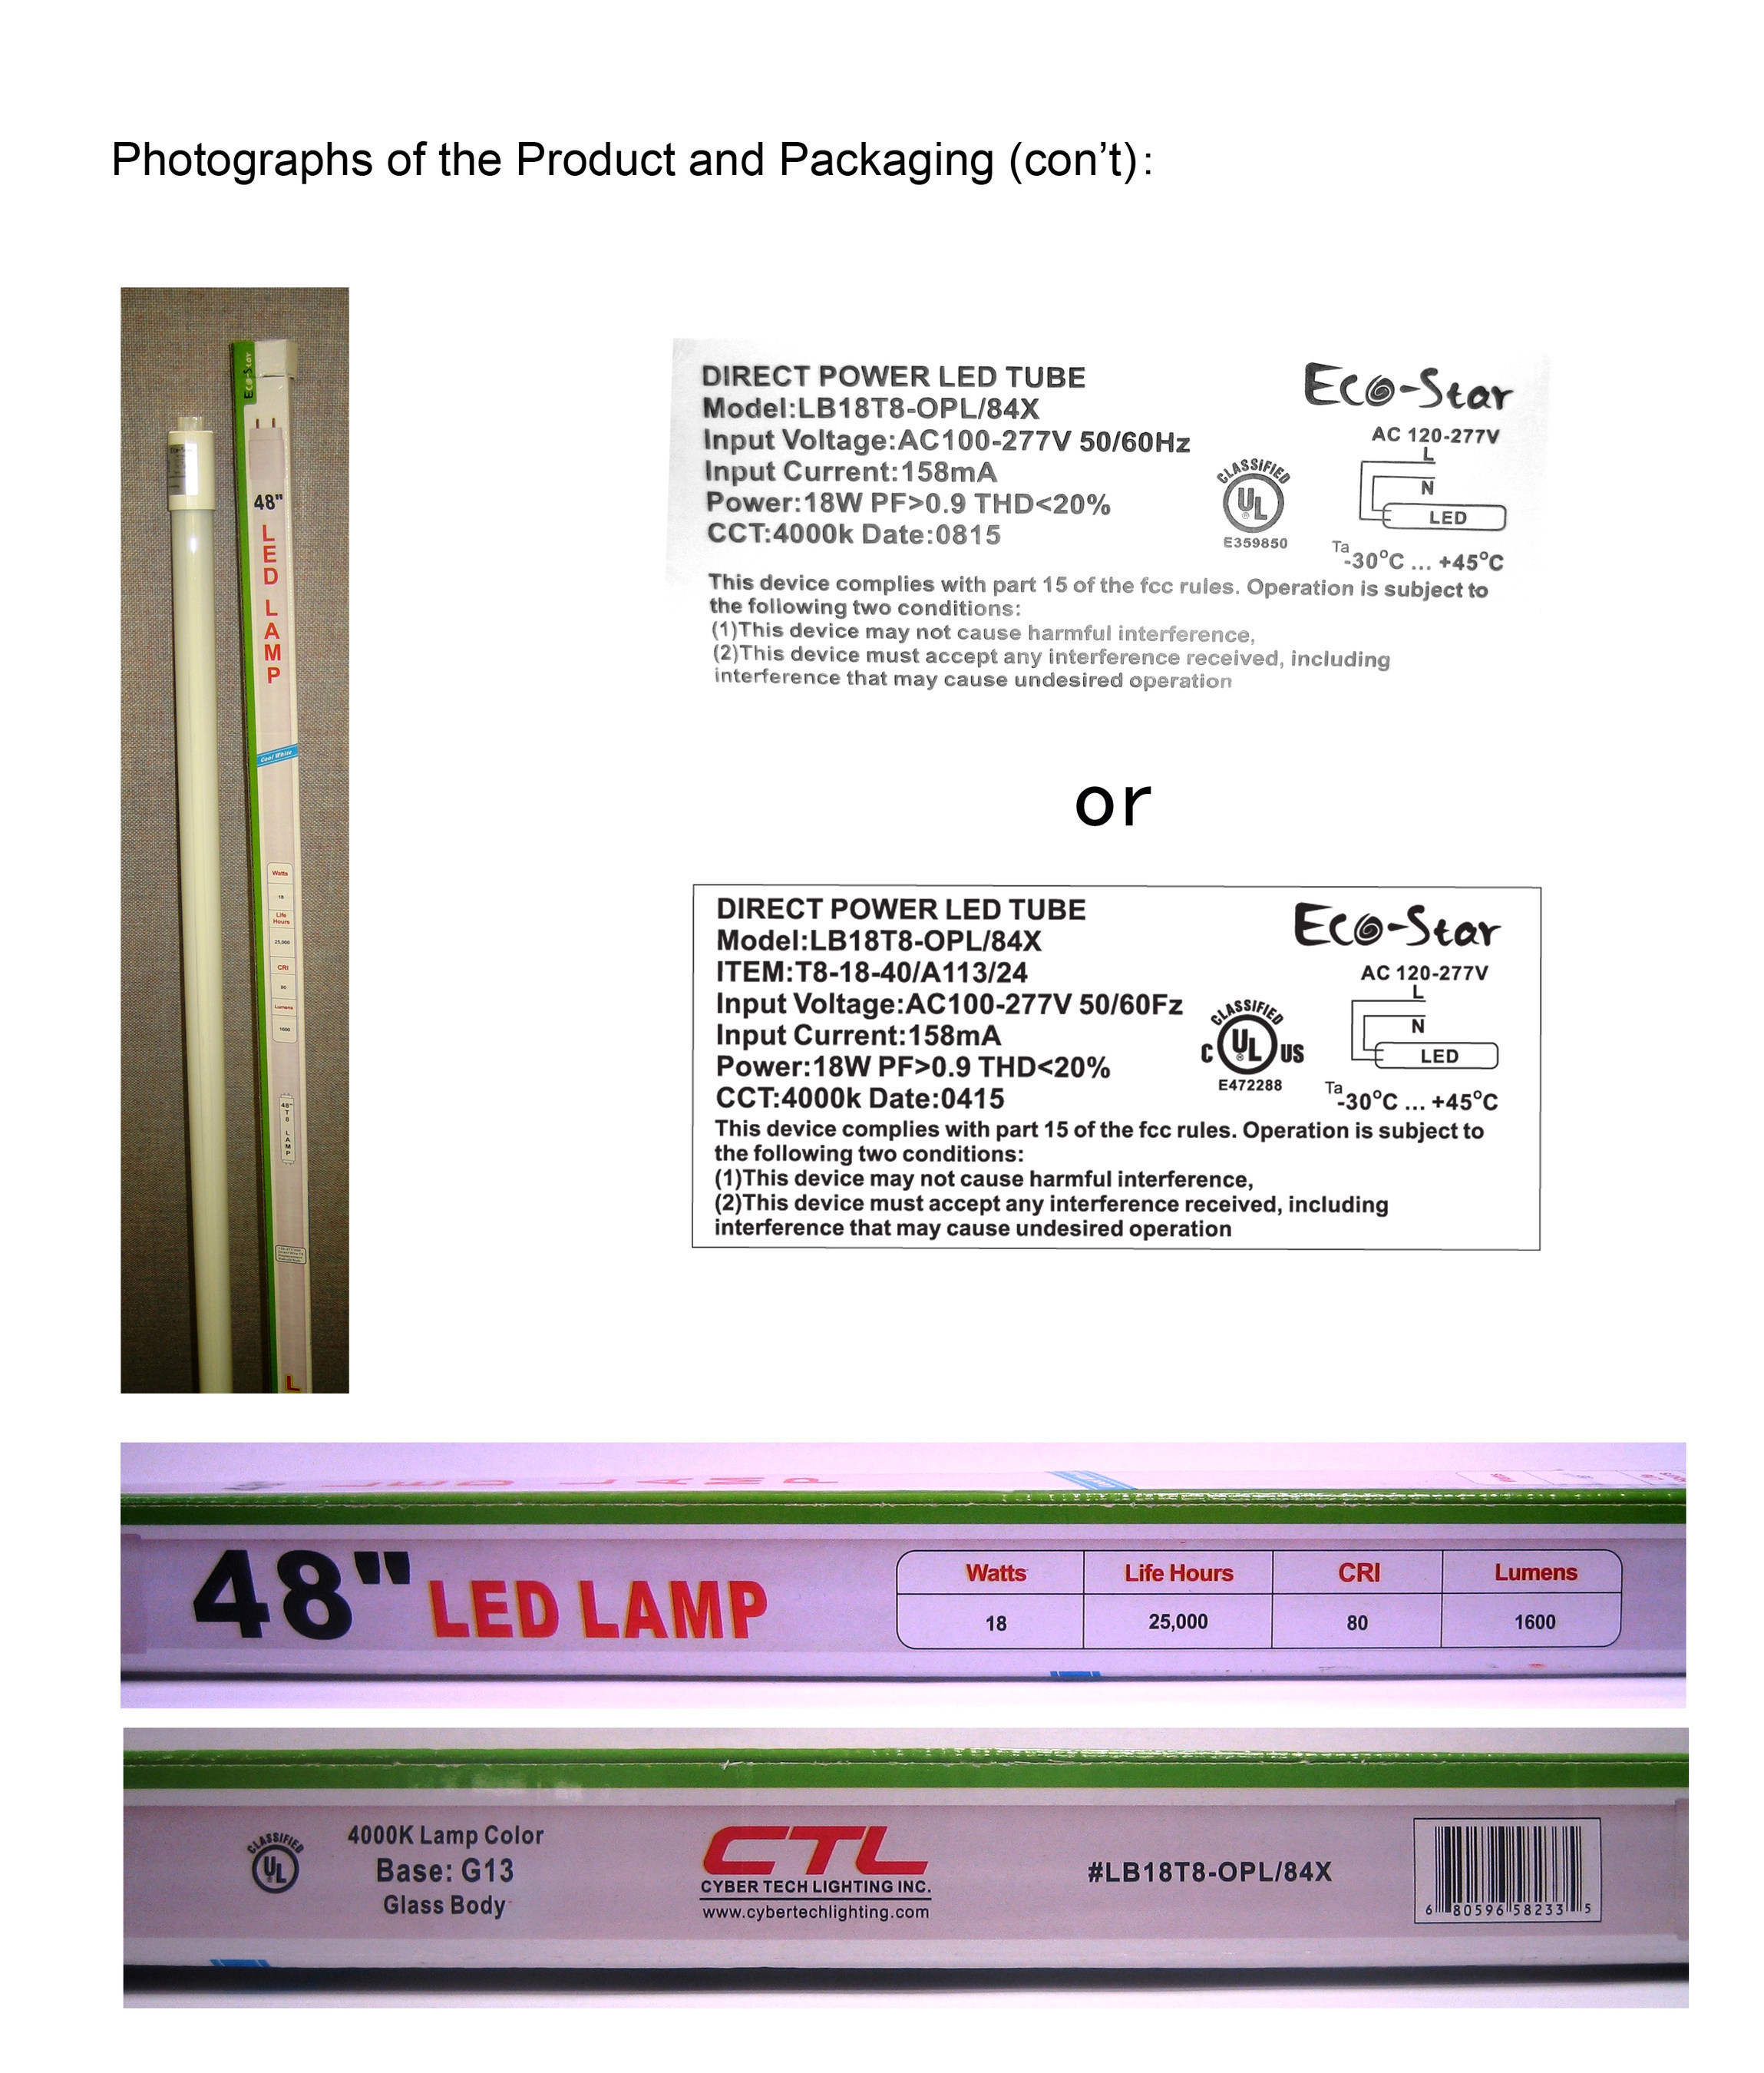 PUBLIC NOTICE: Foshan Warns of Unauthorized UL Mark on LED T8